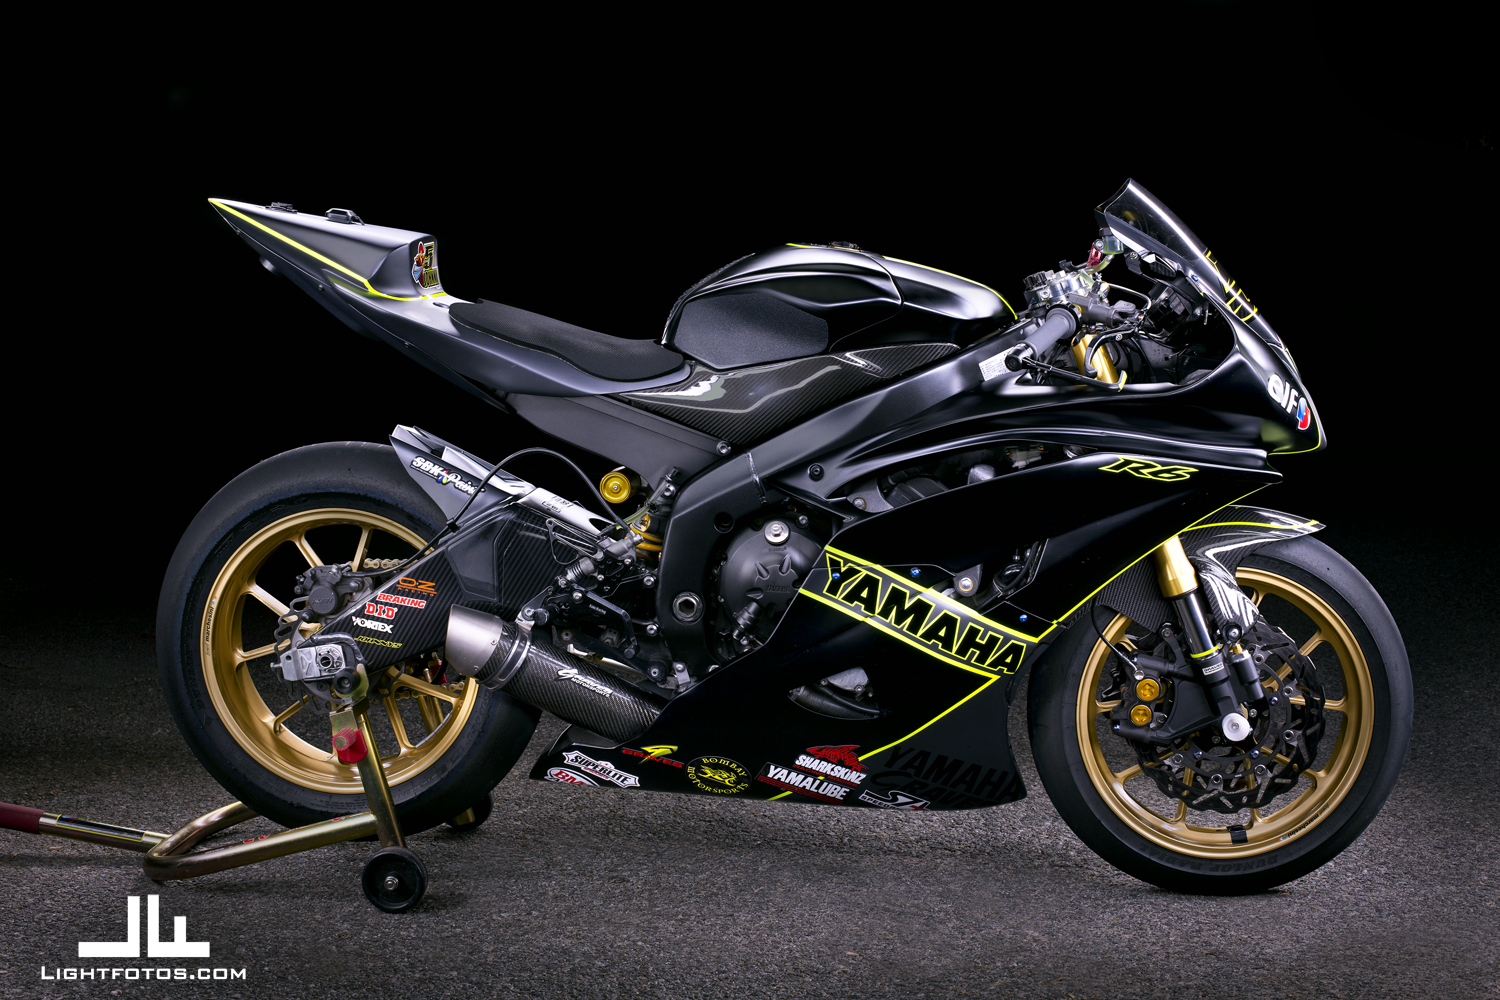 Ripper: 2008 Yamaha R6 Graves Spec Racebike - Rare SportBikes For Sale